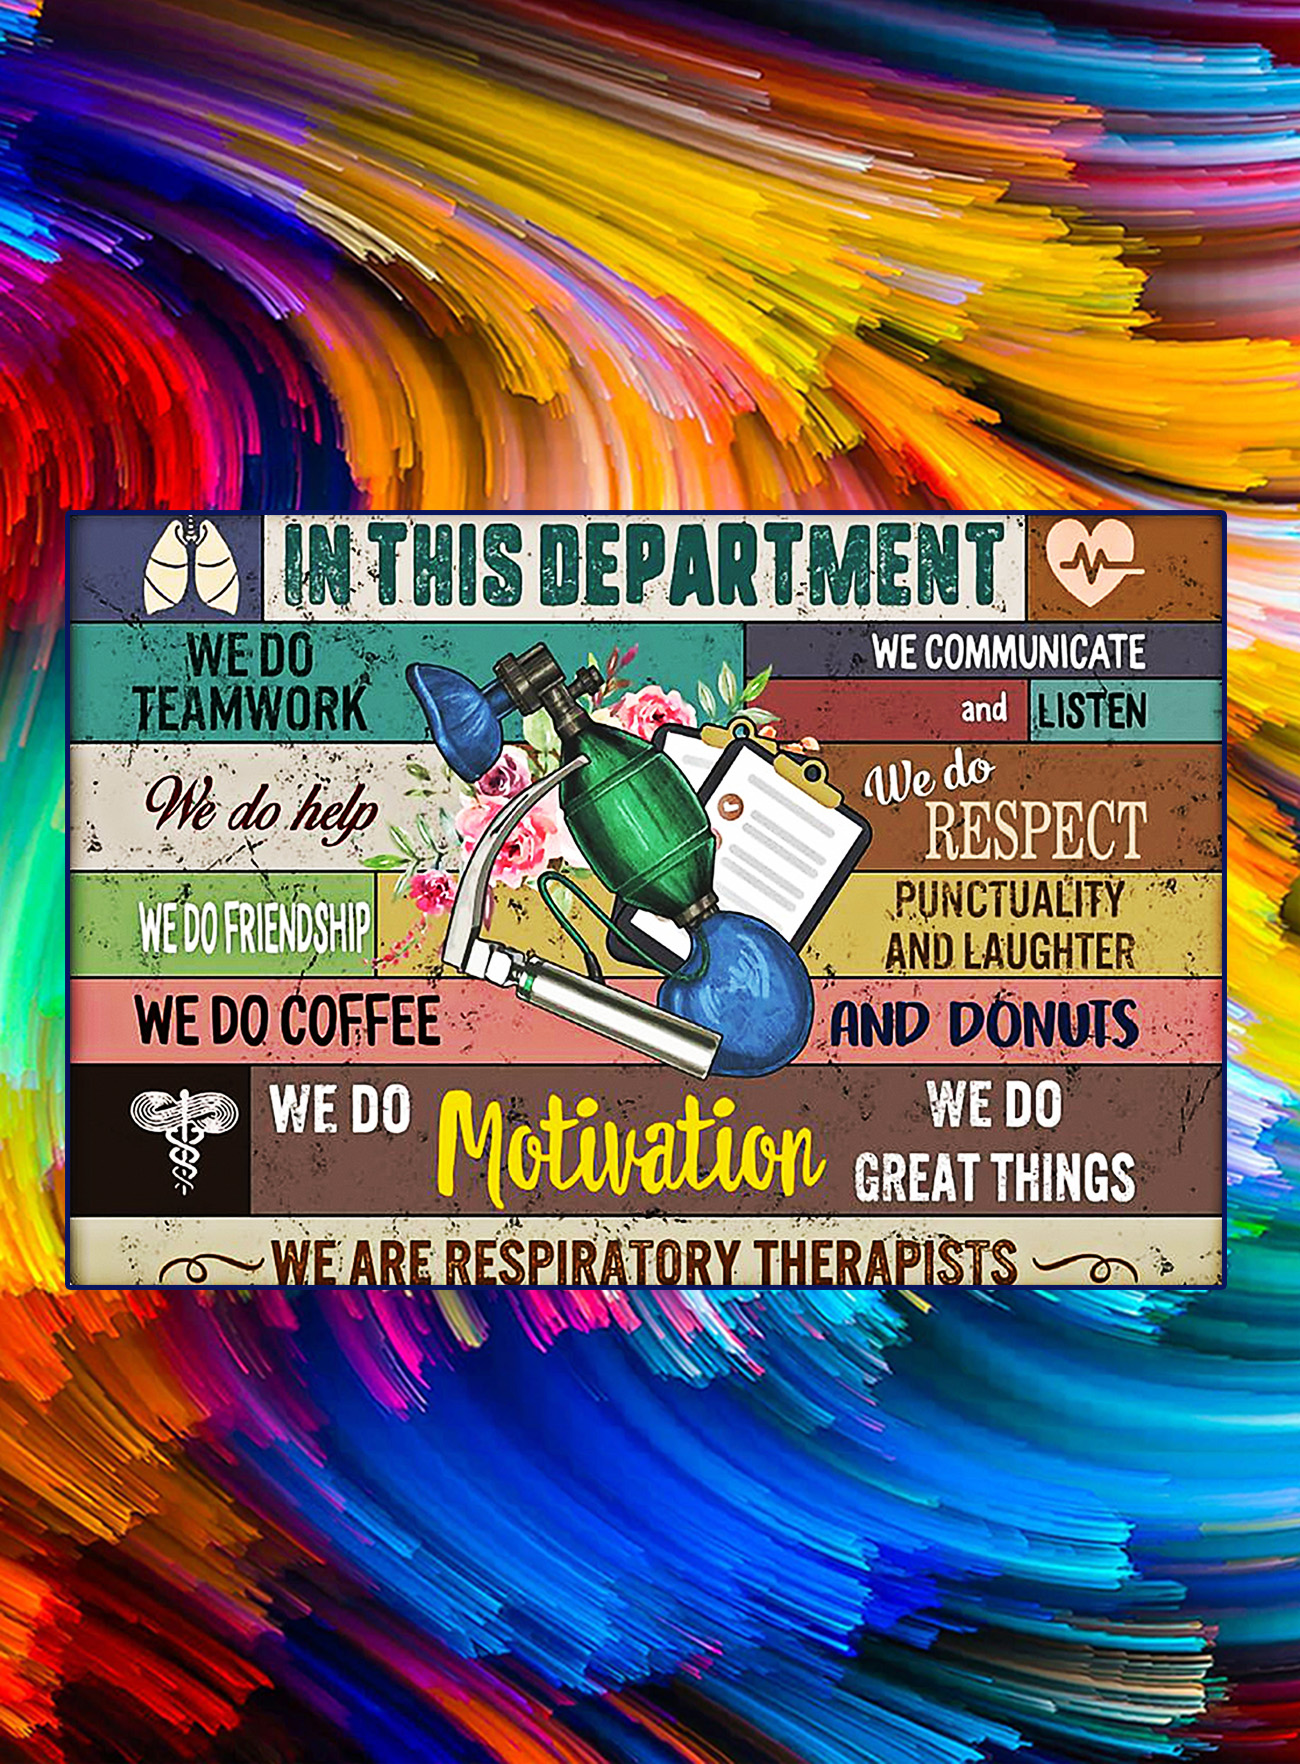 In this department we are respiratory therapists poster - A4